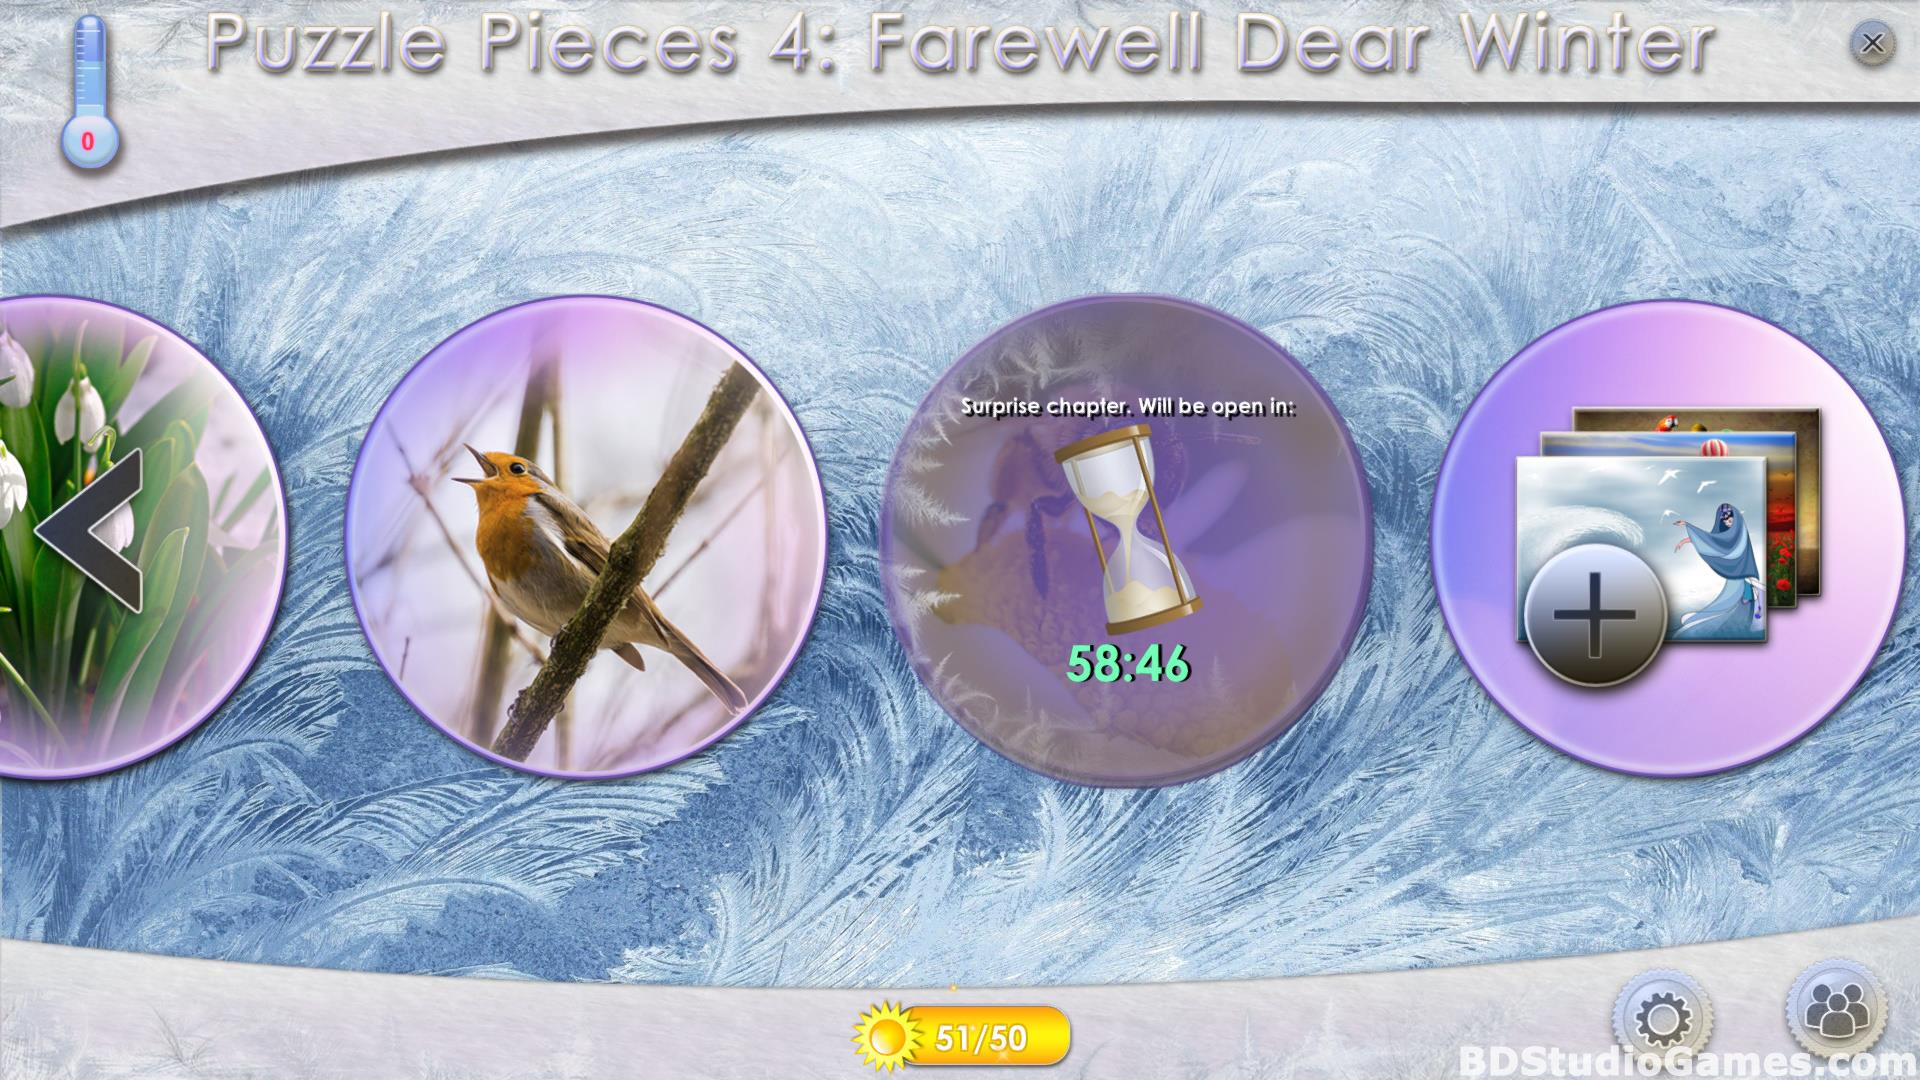 Puzzle Pieces 4: Farewell Dear Winter Free Download Screenshots 03